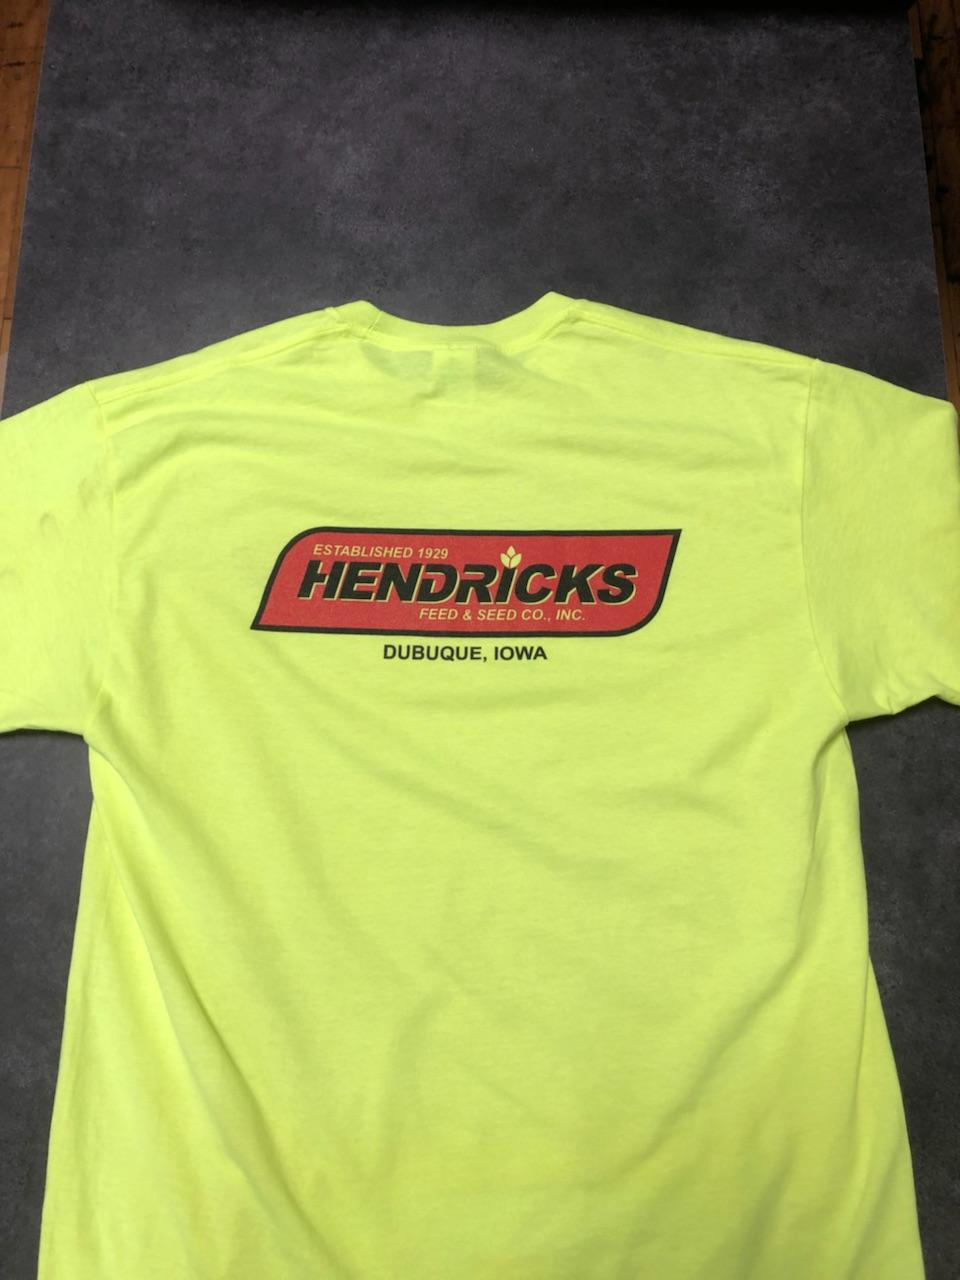 Photo of Hendricks Feed T-shirt. The shirt is yellow with the red Hendricks logo across the front. Written in black and yellow on the red is '(yellow) Estabished 1929, (black) Hendricks, (yellow) Feed & Seed Co., Inc.' is in the banner and 'Dubuque, Iowa' is below the banner.